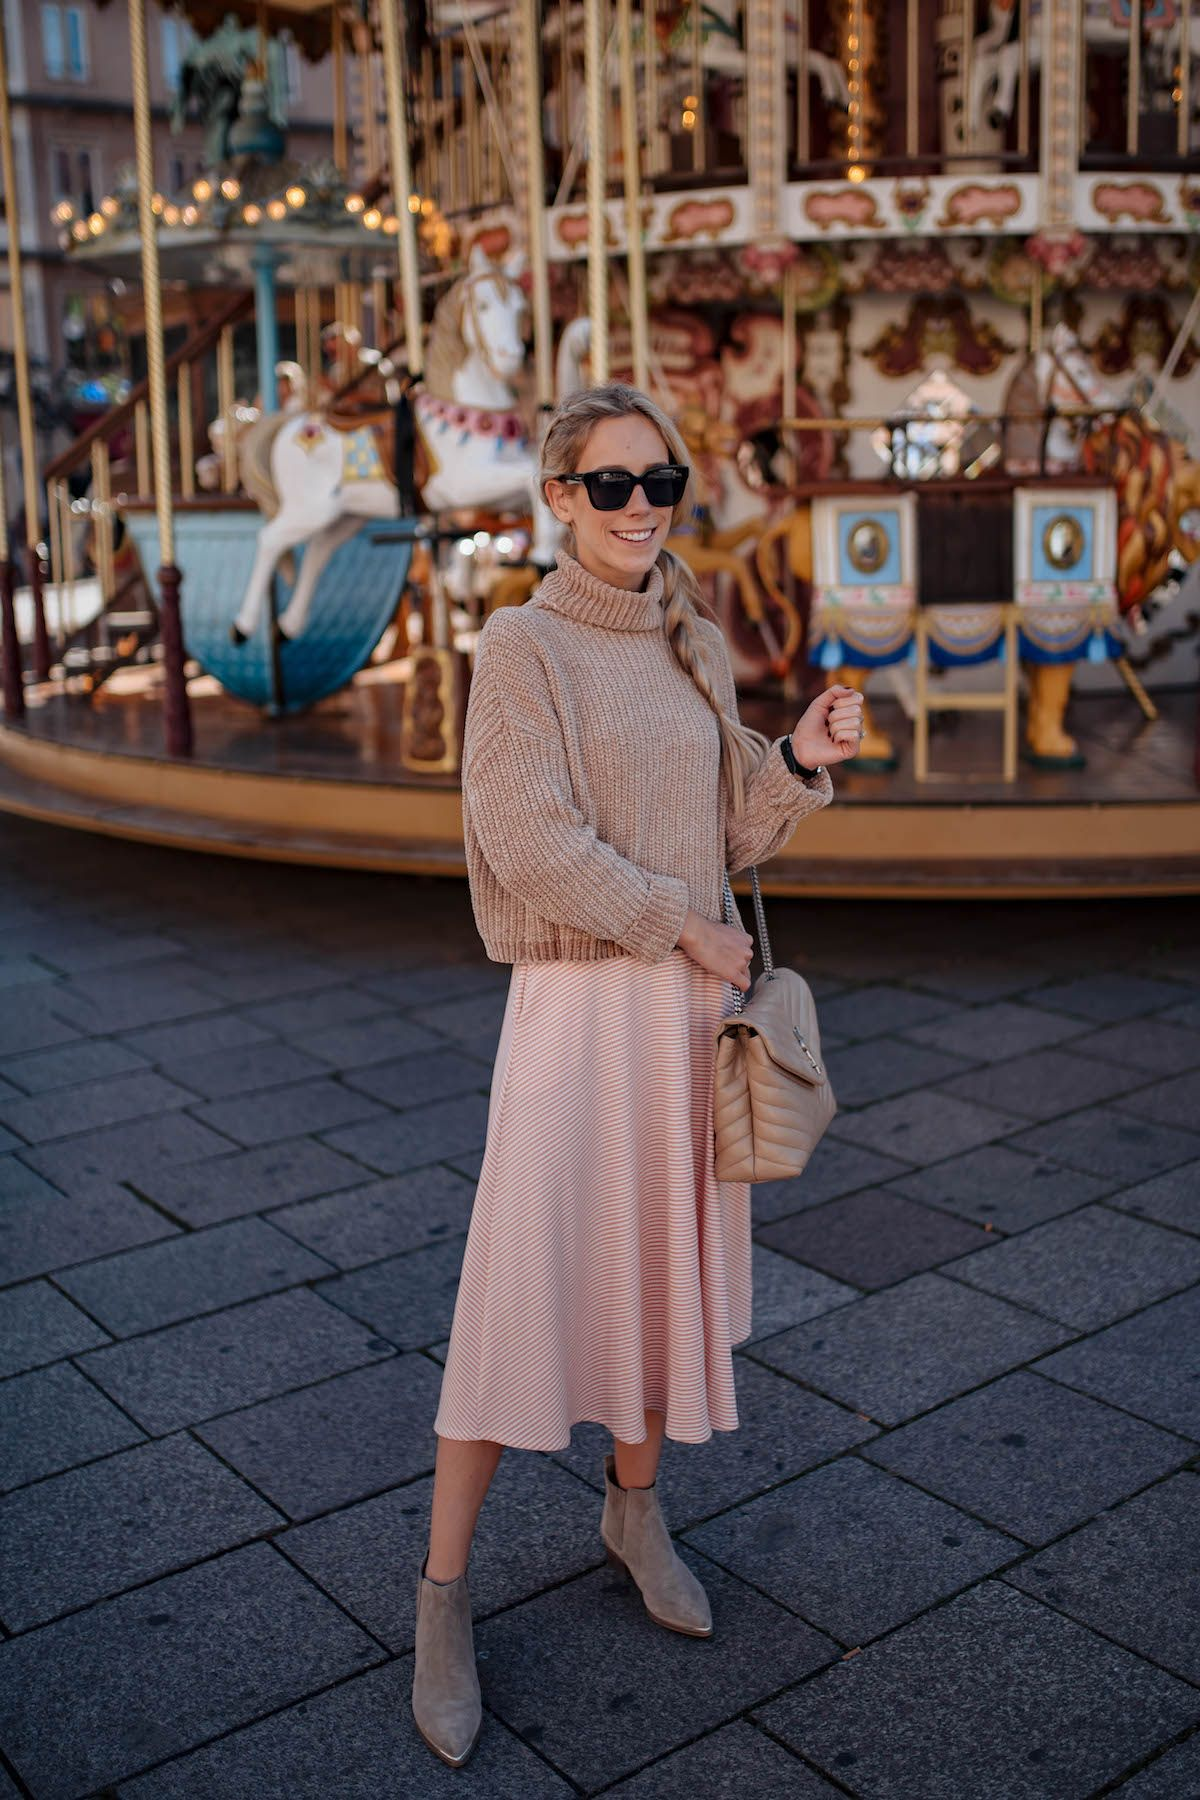 Outfit Hack Layer A Chunky Sweater Over A Midi Dress For A Fall Appropriate Look Midi Dress Outfit Fall Maxi Dress Outfit Fall Sweater Over Dress [ 1800 x 1200 Pixel ]